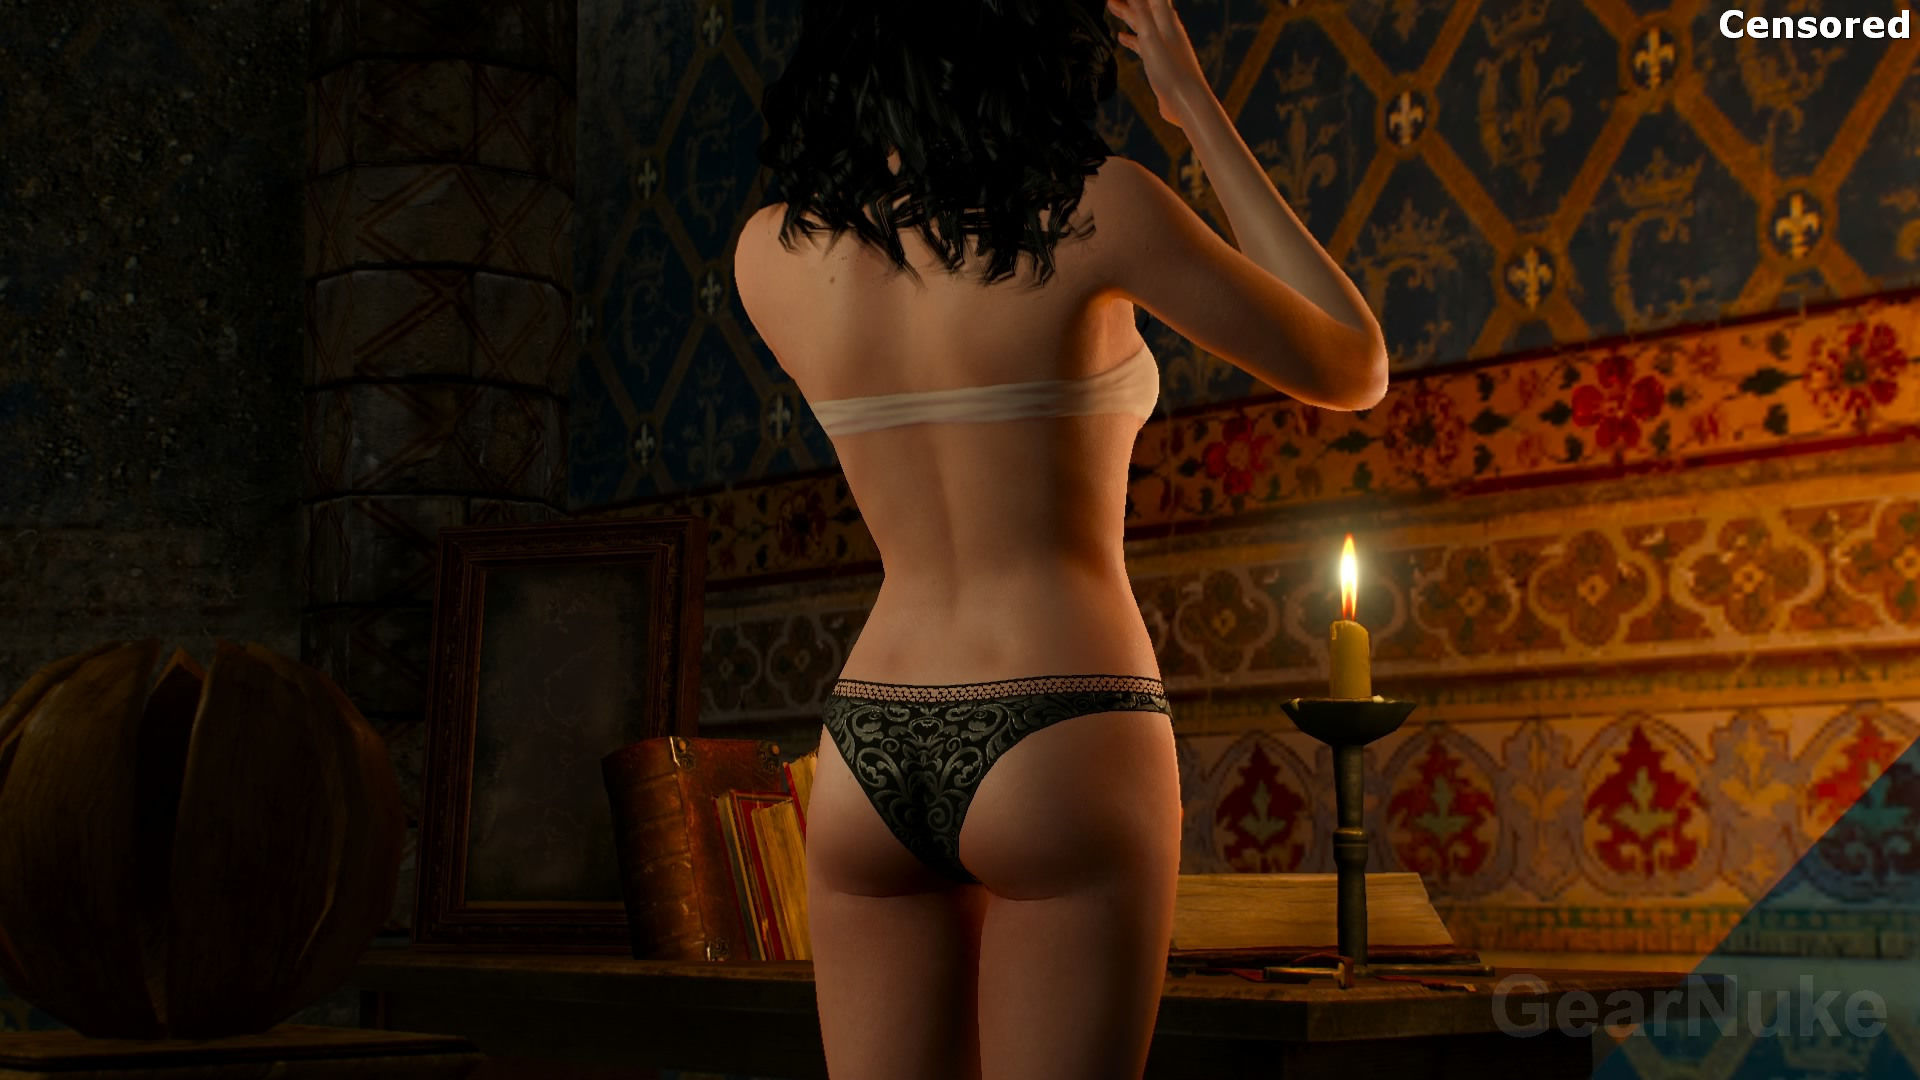 witcher3wh_consored04